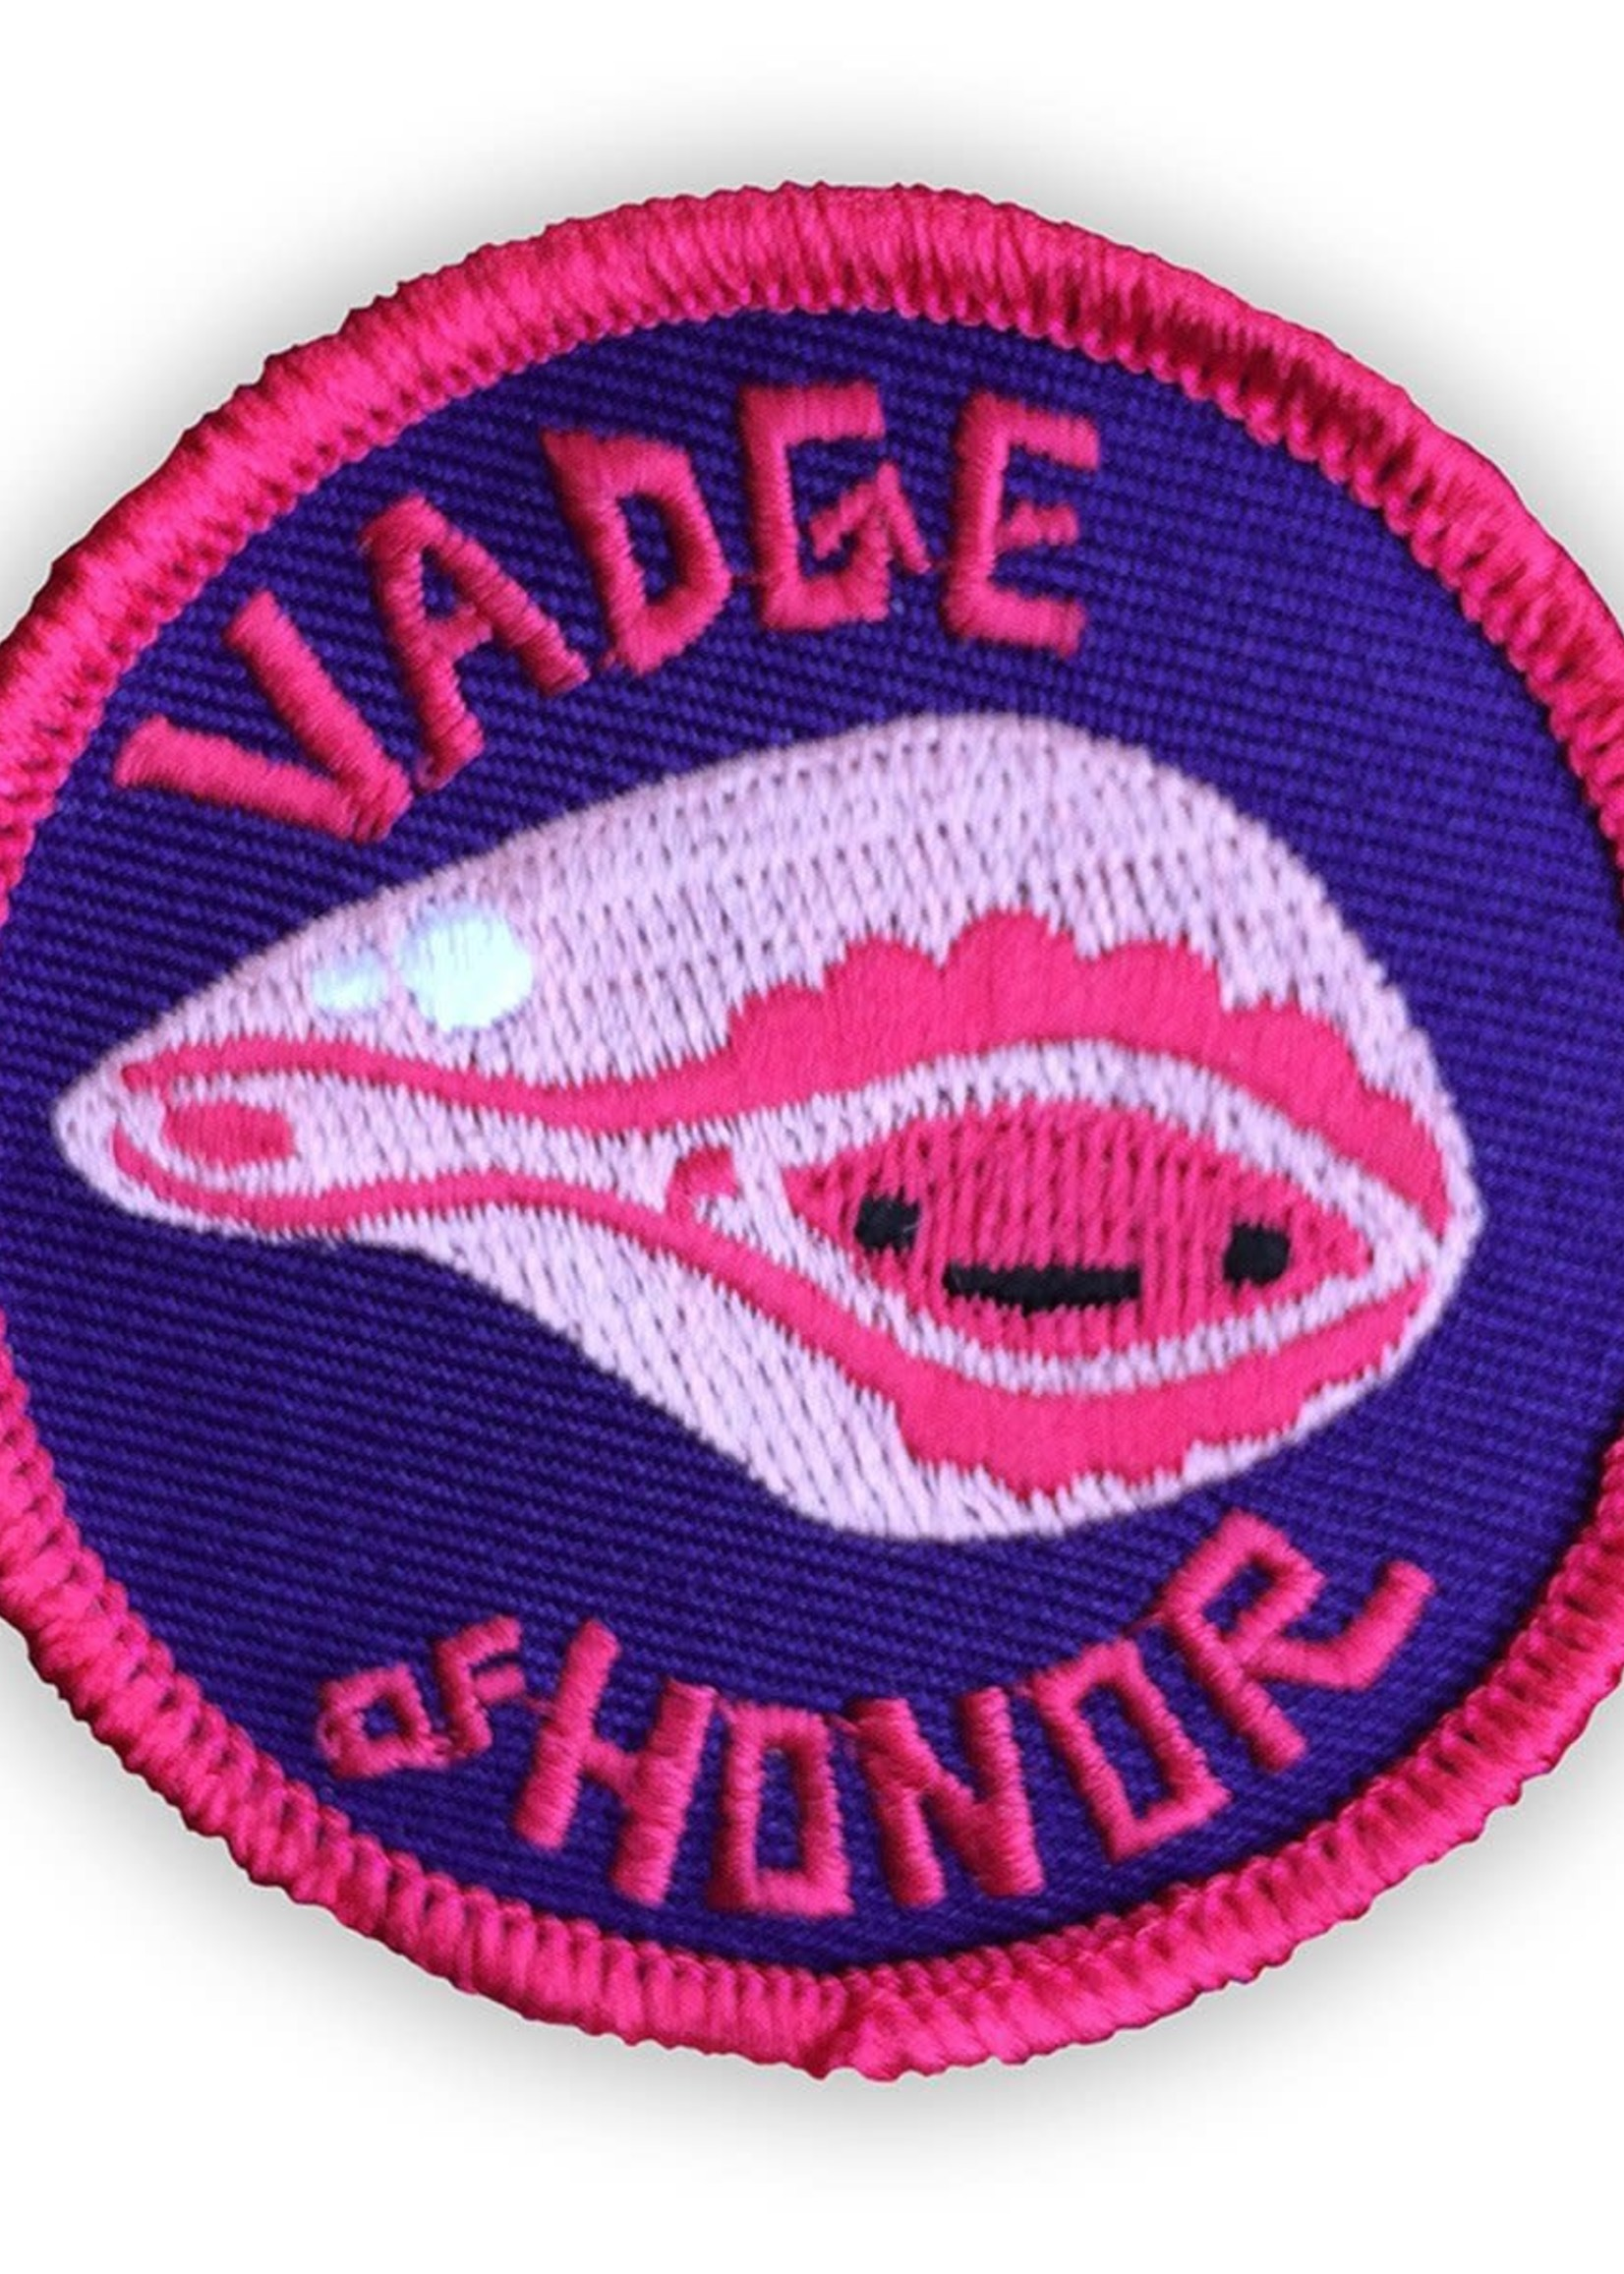 BADGE BOMB VADGE OF HONOR PATCH